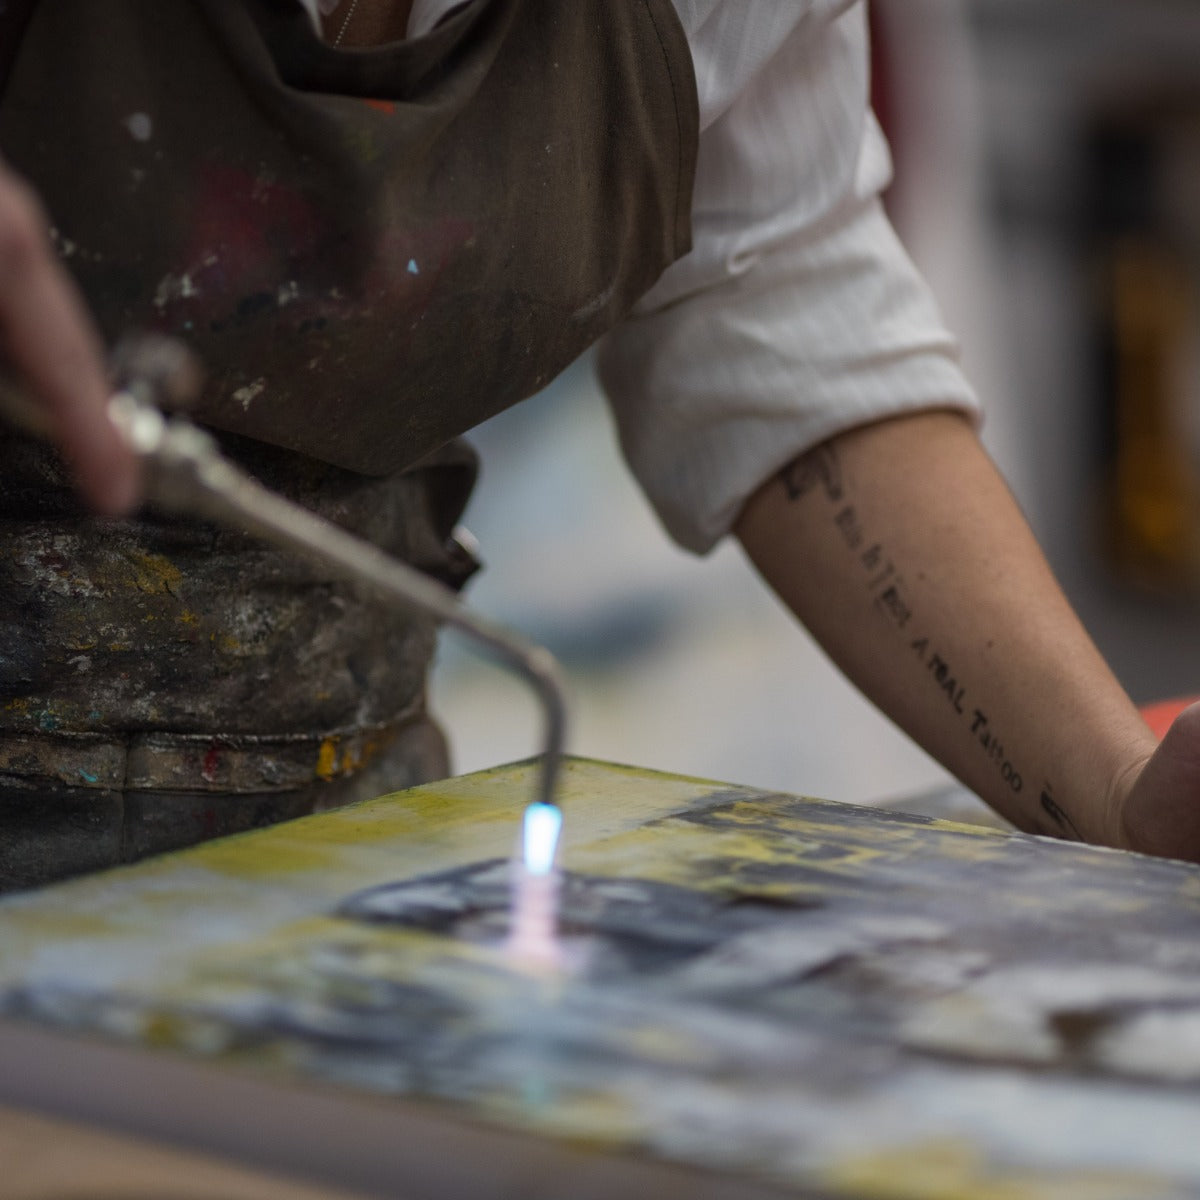 Painting with Fire - A Year-Long Encaustic Journey through e-courses